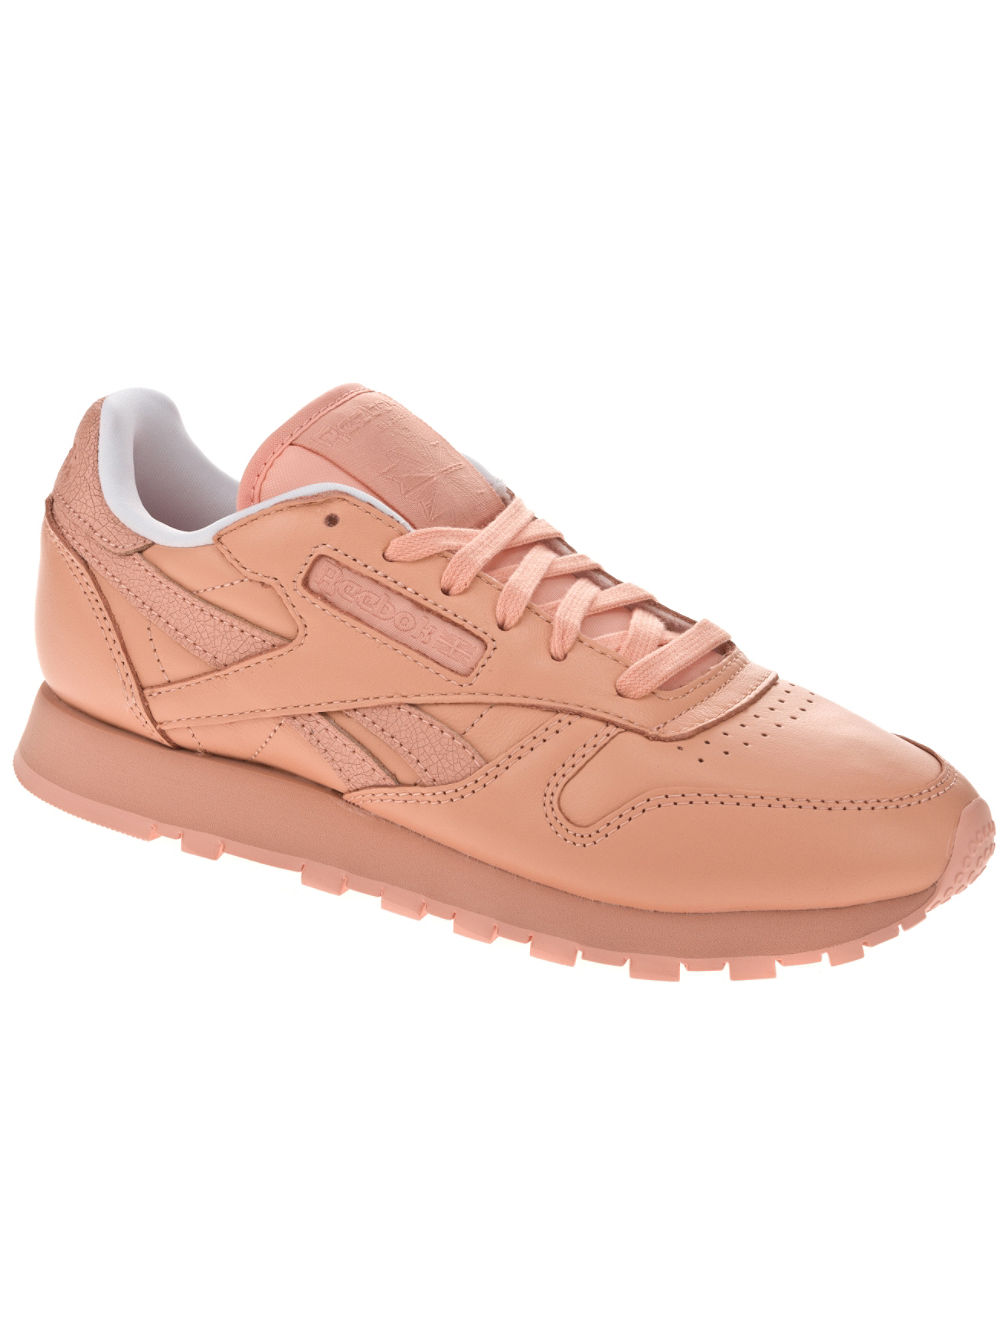 Classic Leather Spirit Sneakers Frauen